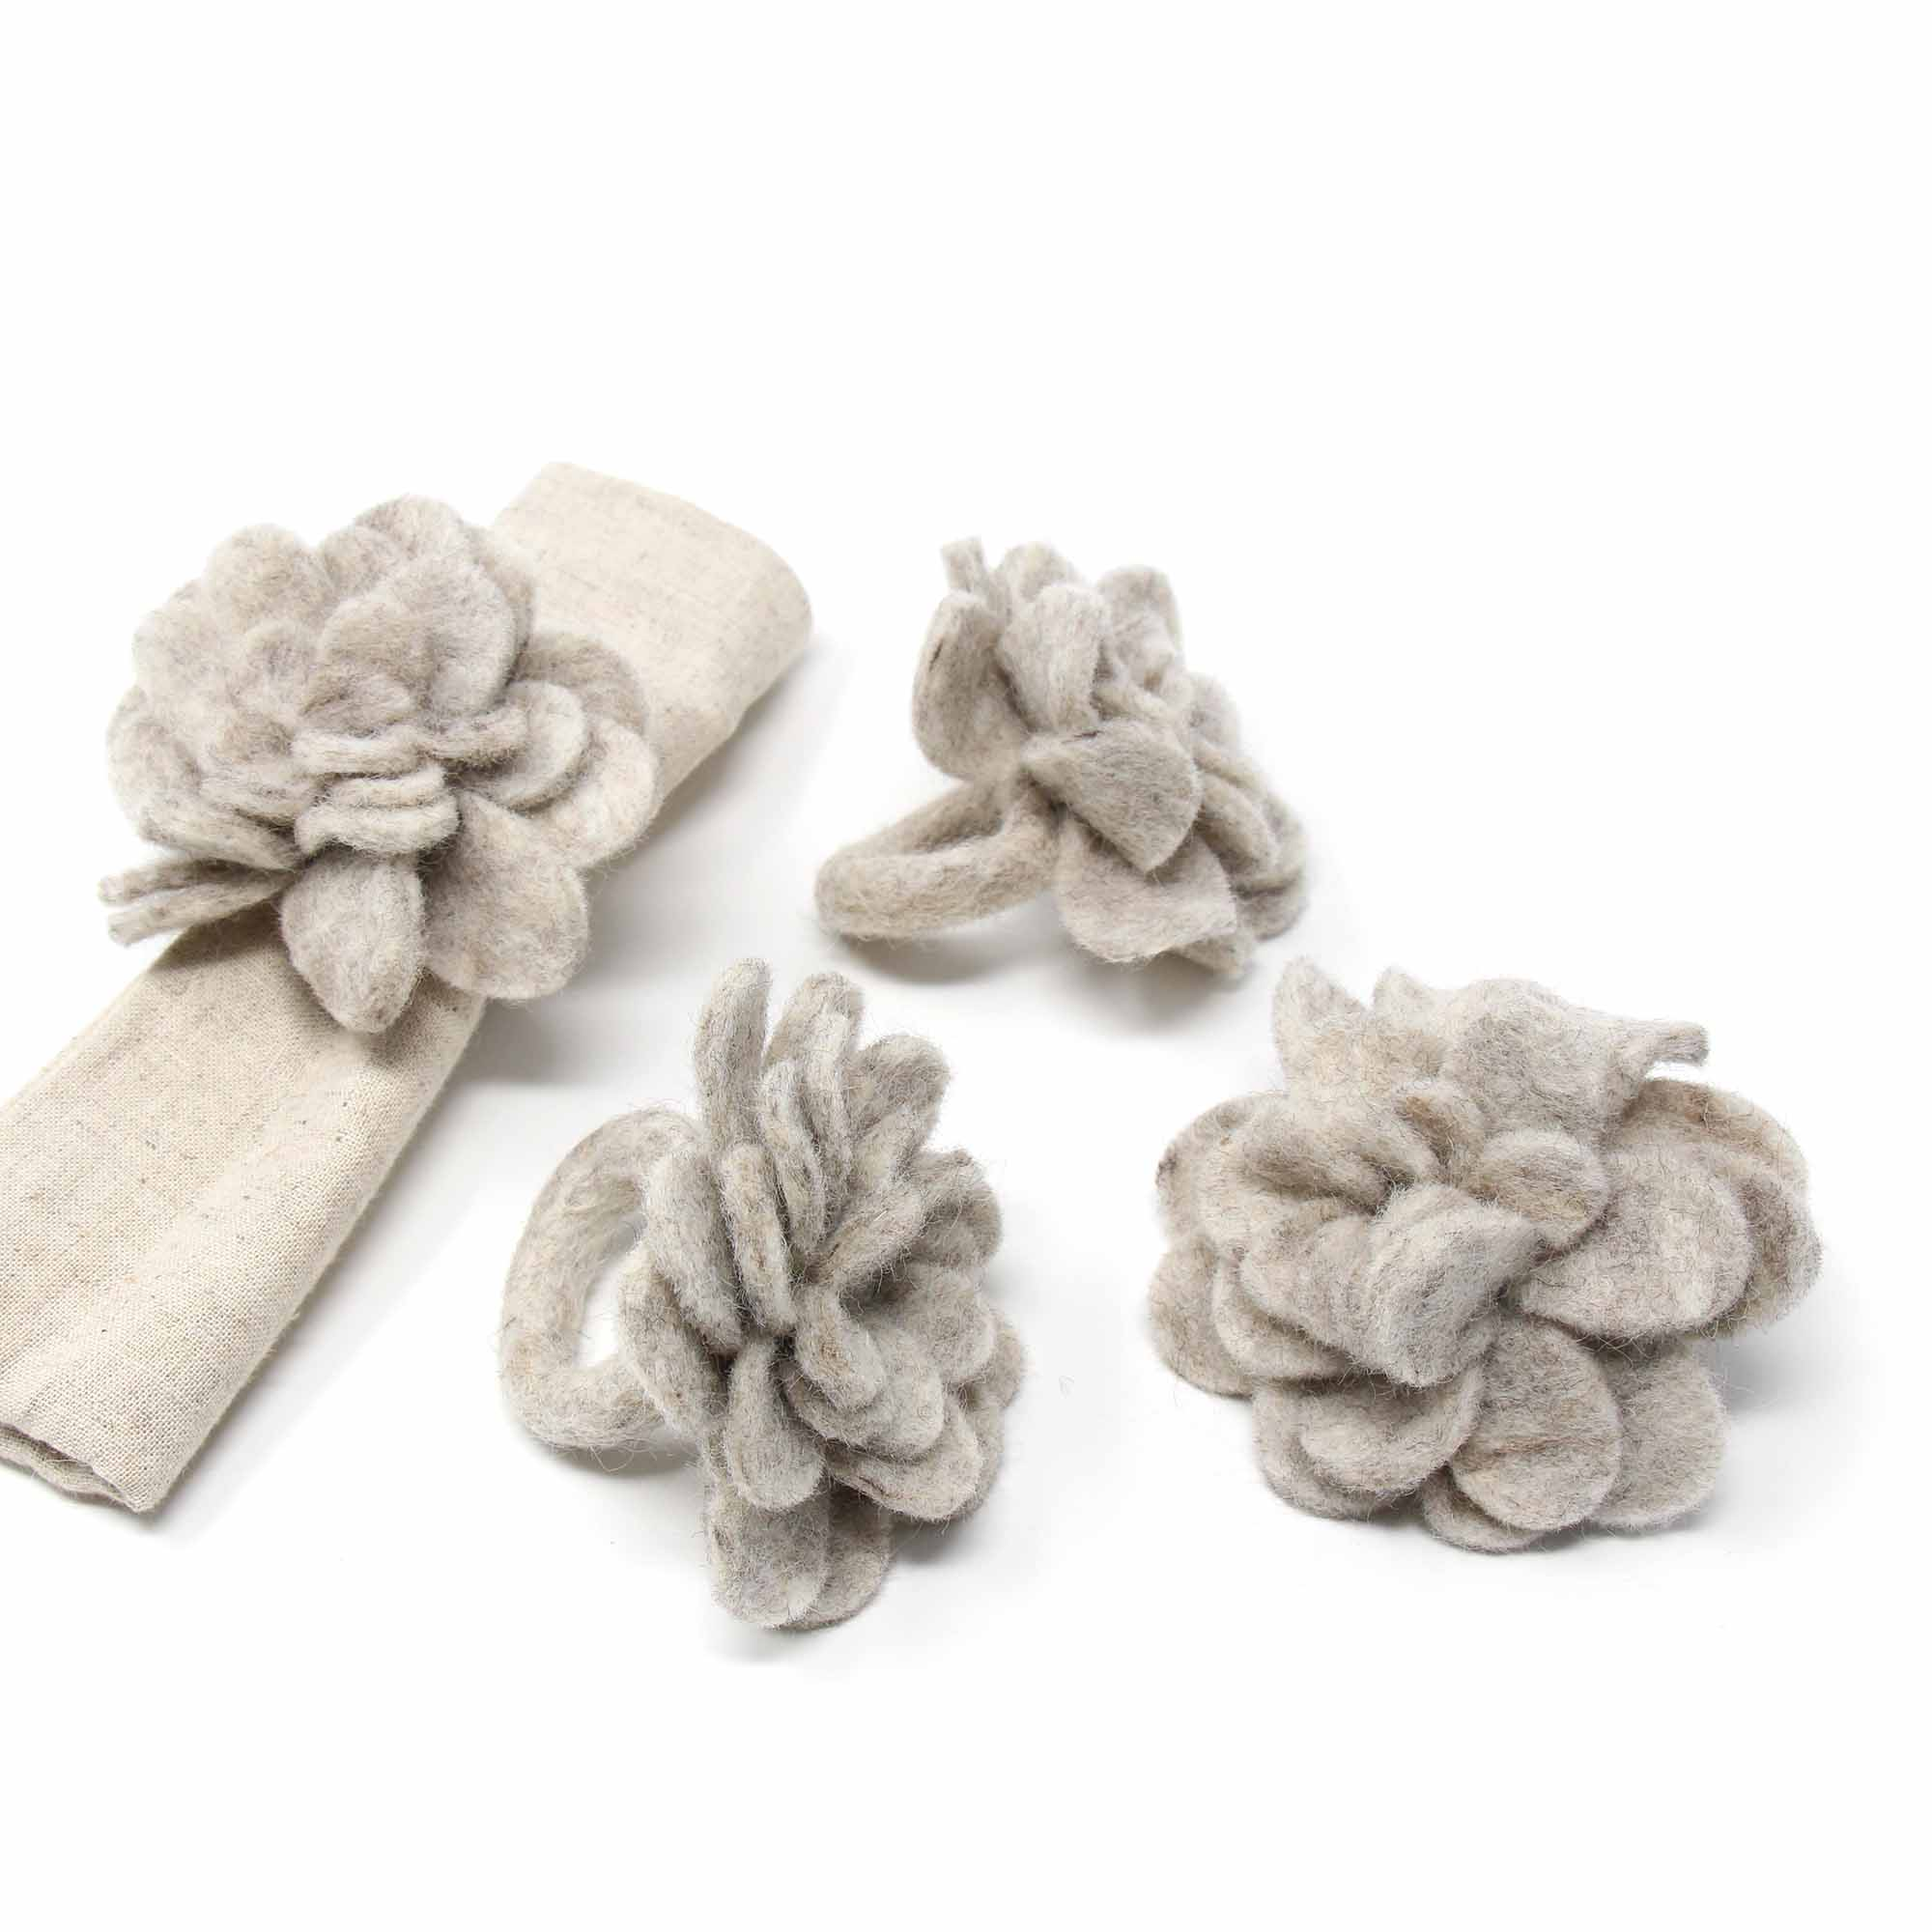 Hand Crafted Felt from Nepal: Set of 4 Napkin Rings, Light Grey Zinnias